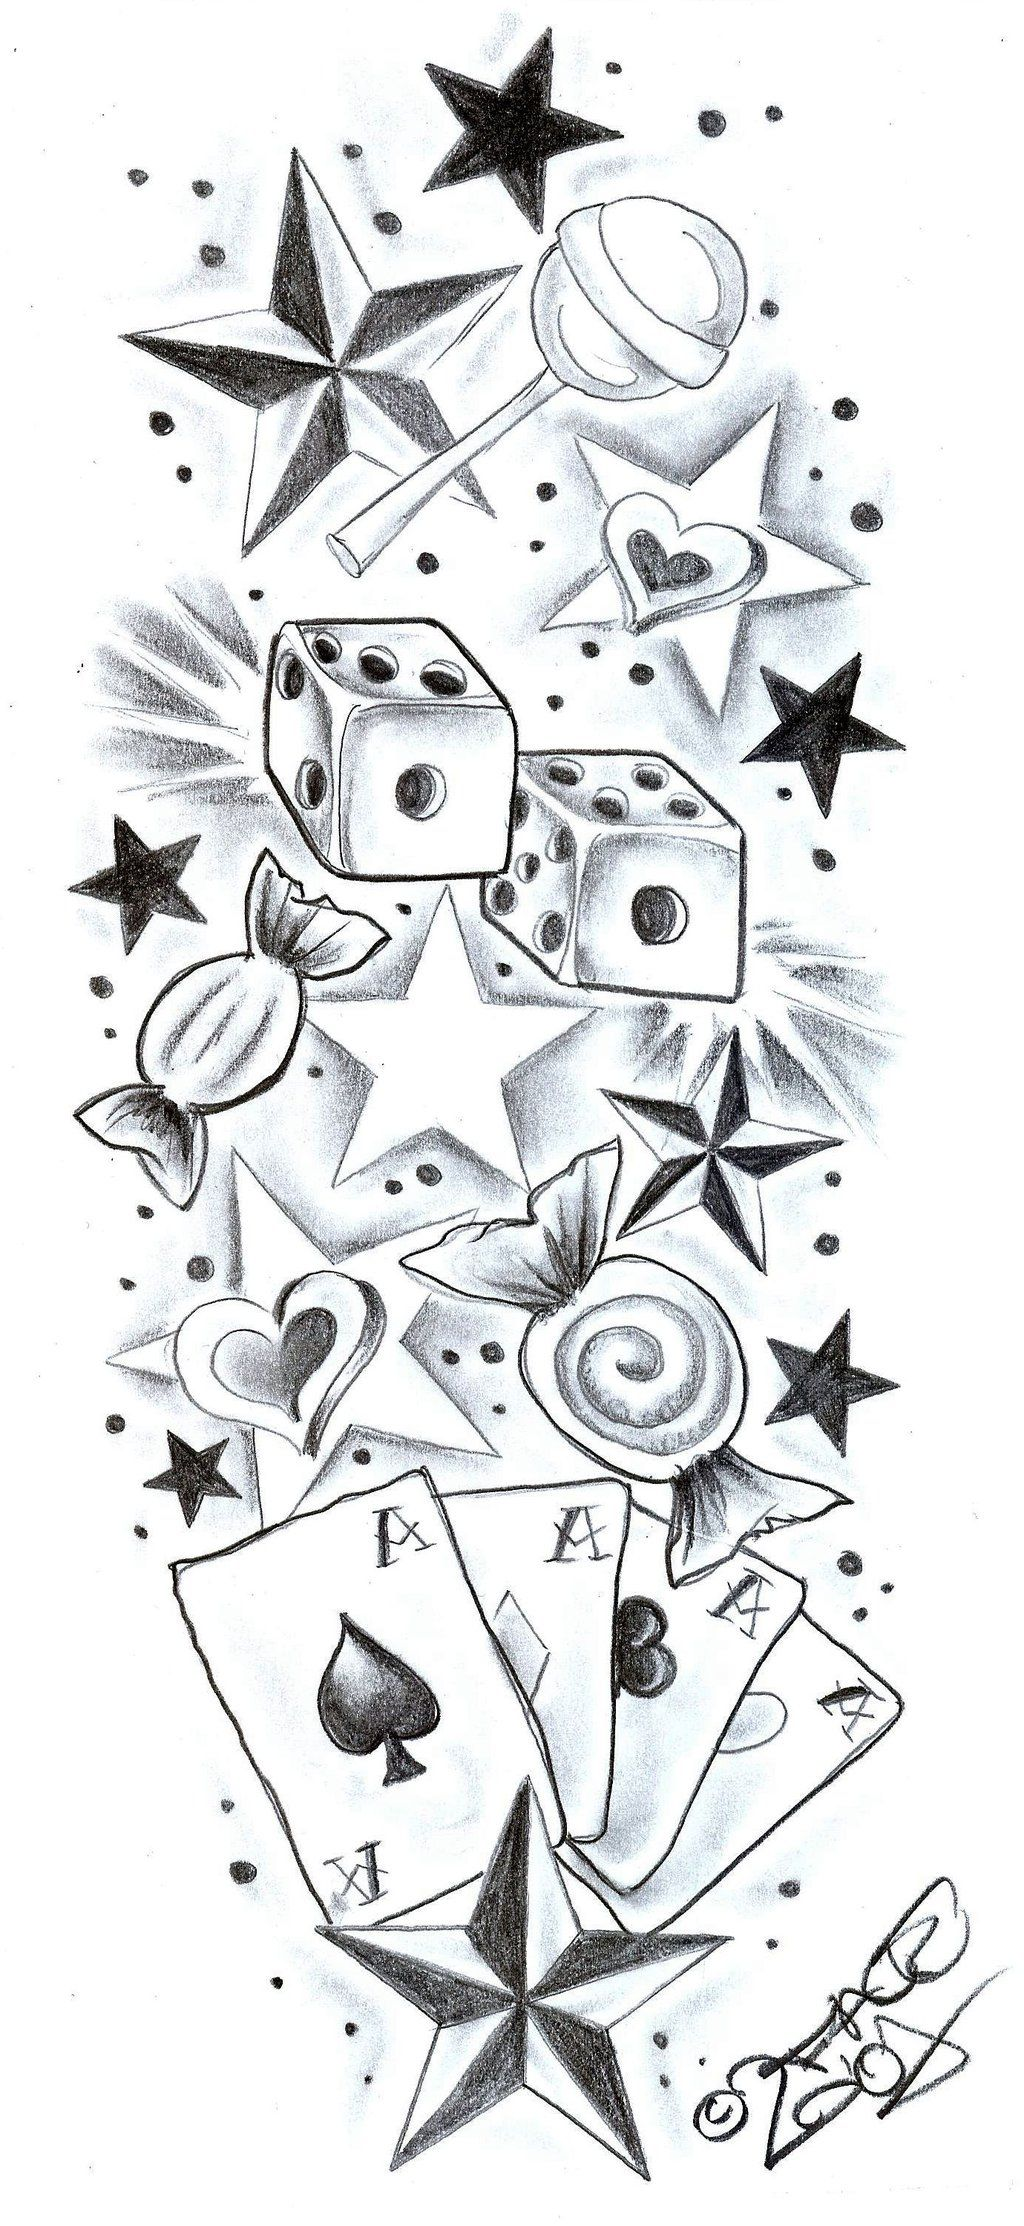 New school tattoo design - Tattoodesign Sweetscherrystars By 2face Tattoo Deviantart Com On Deviantart